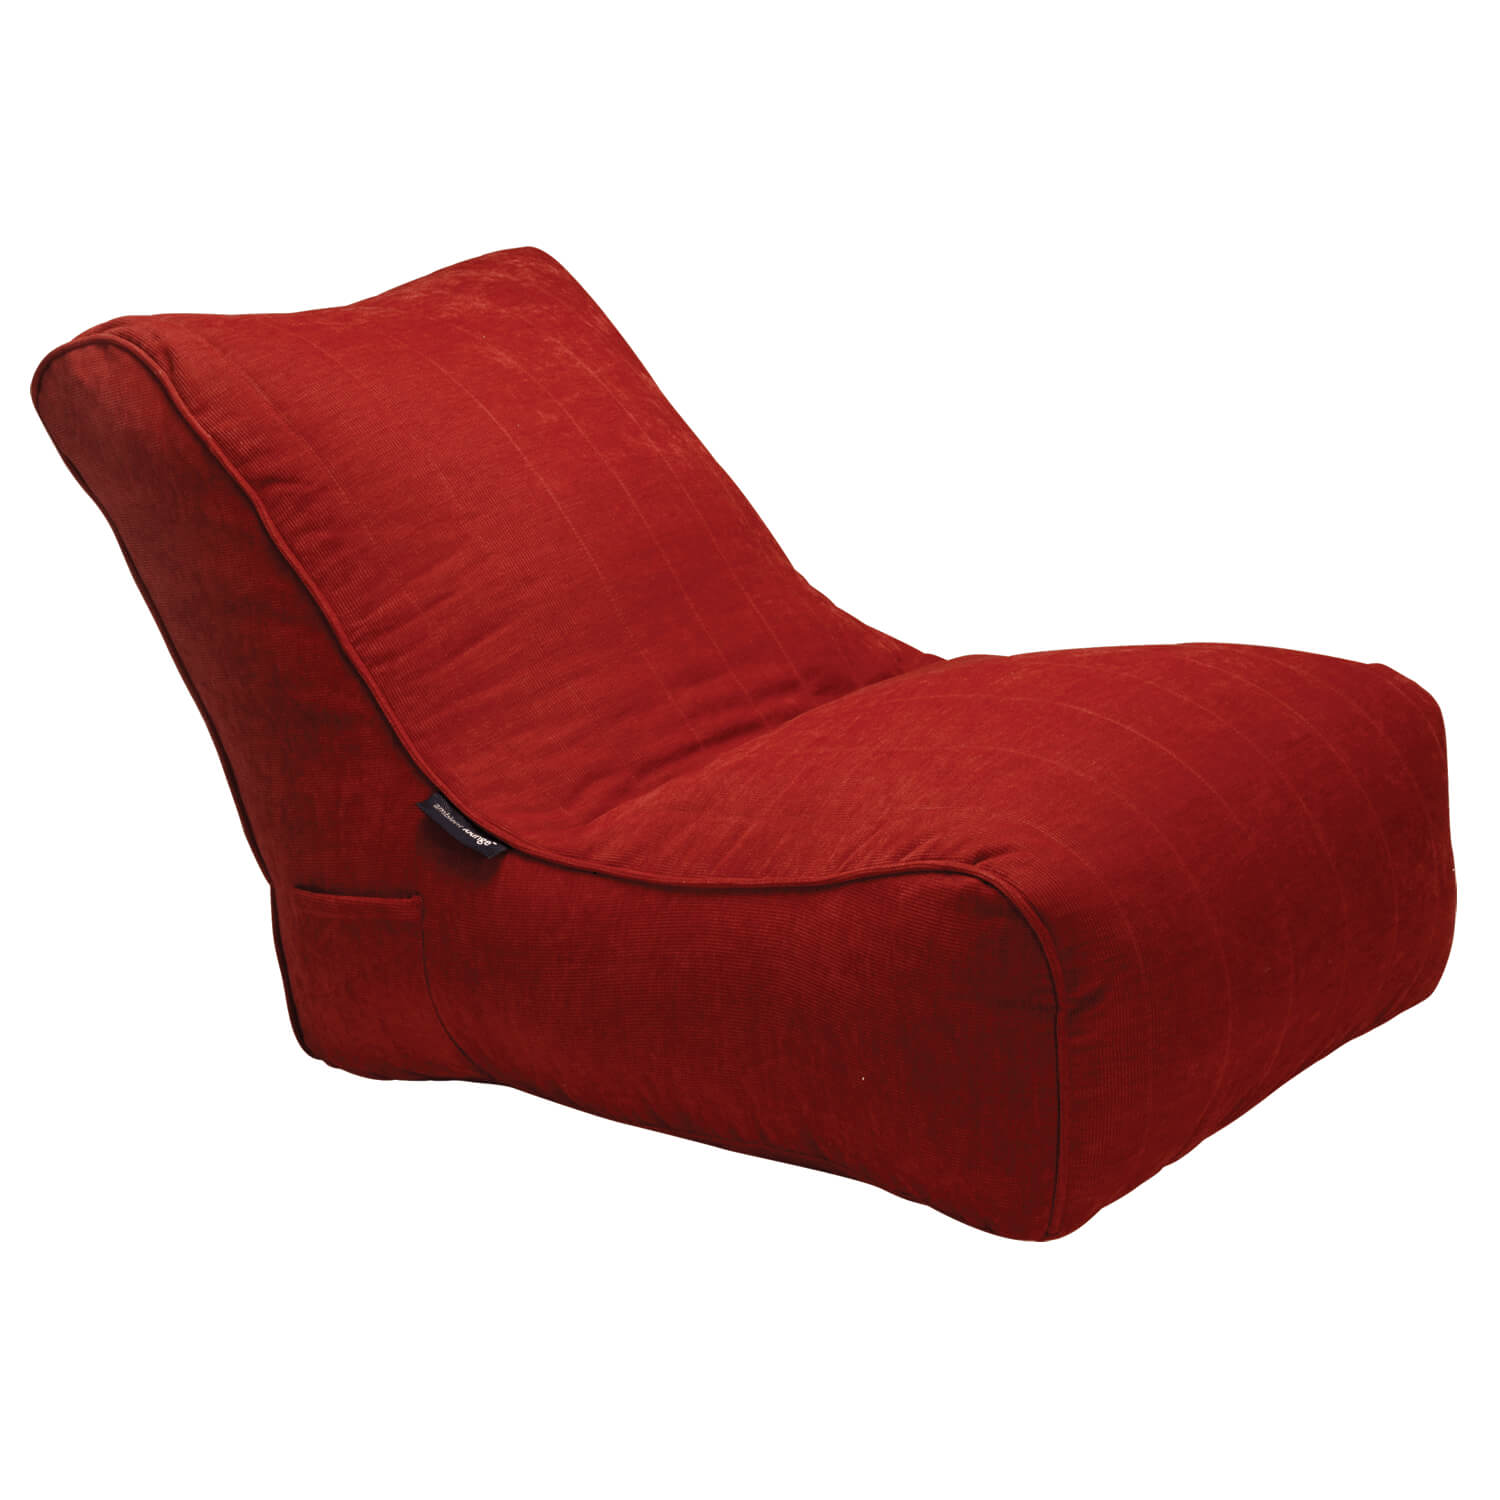 Indoor Bean Bags Evolution Sofa Wildberry Deluxe